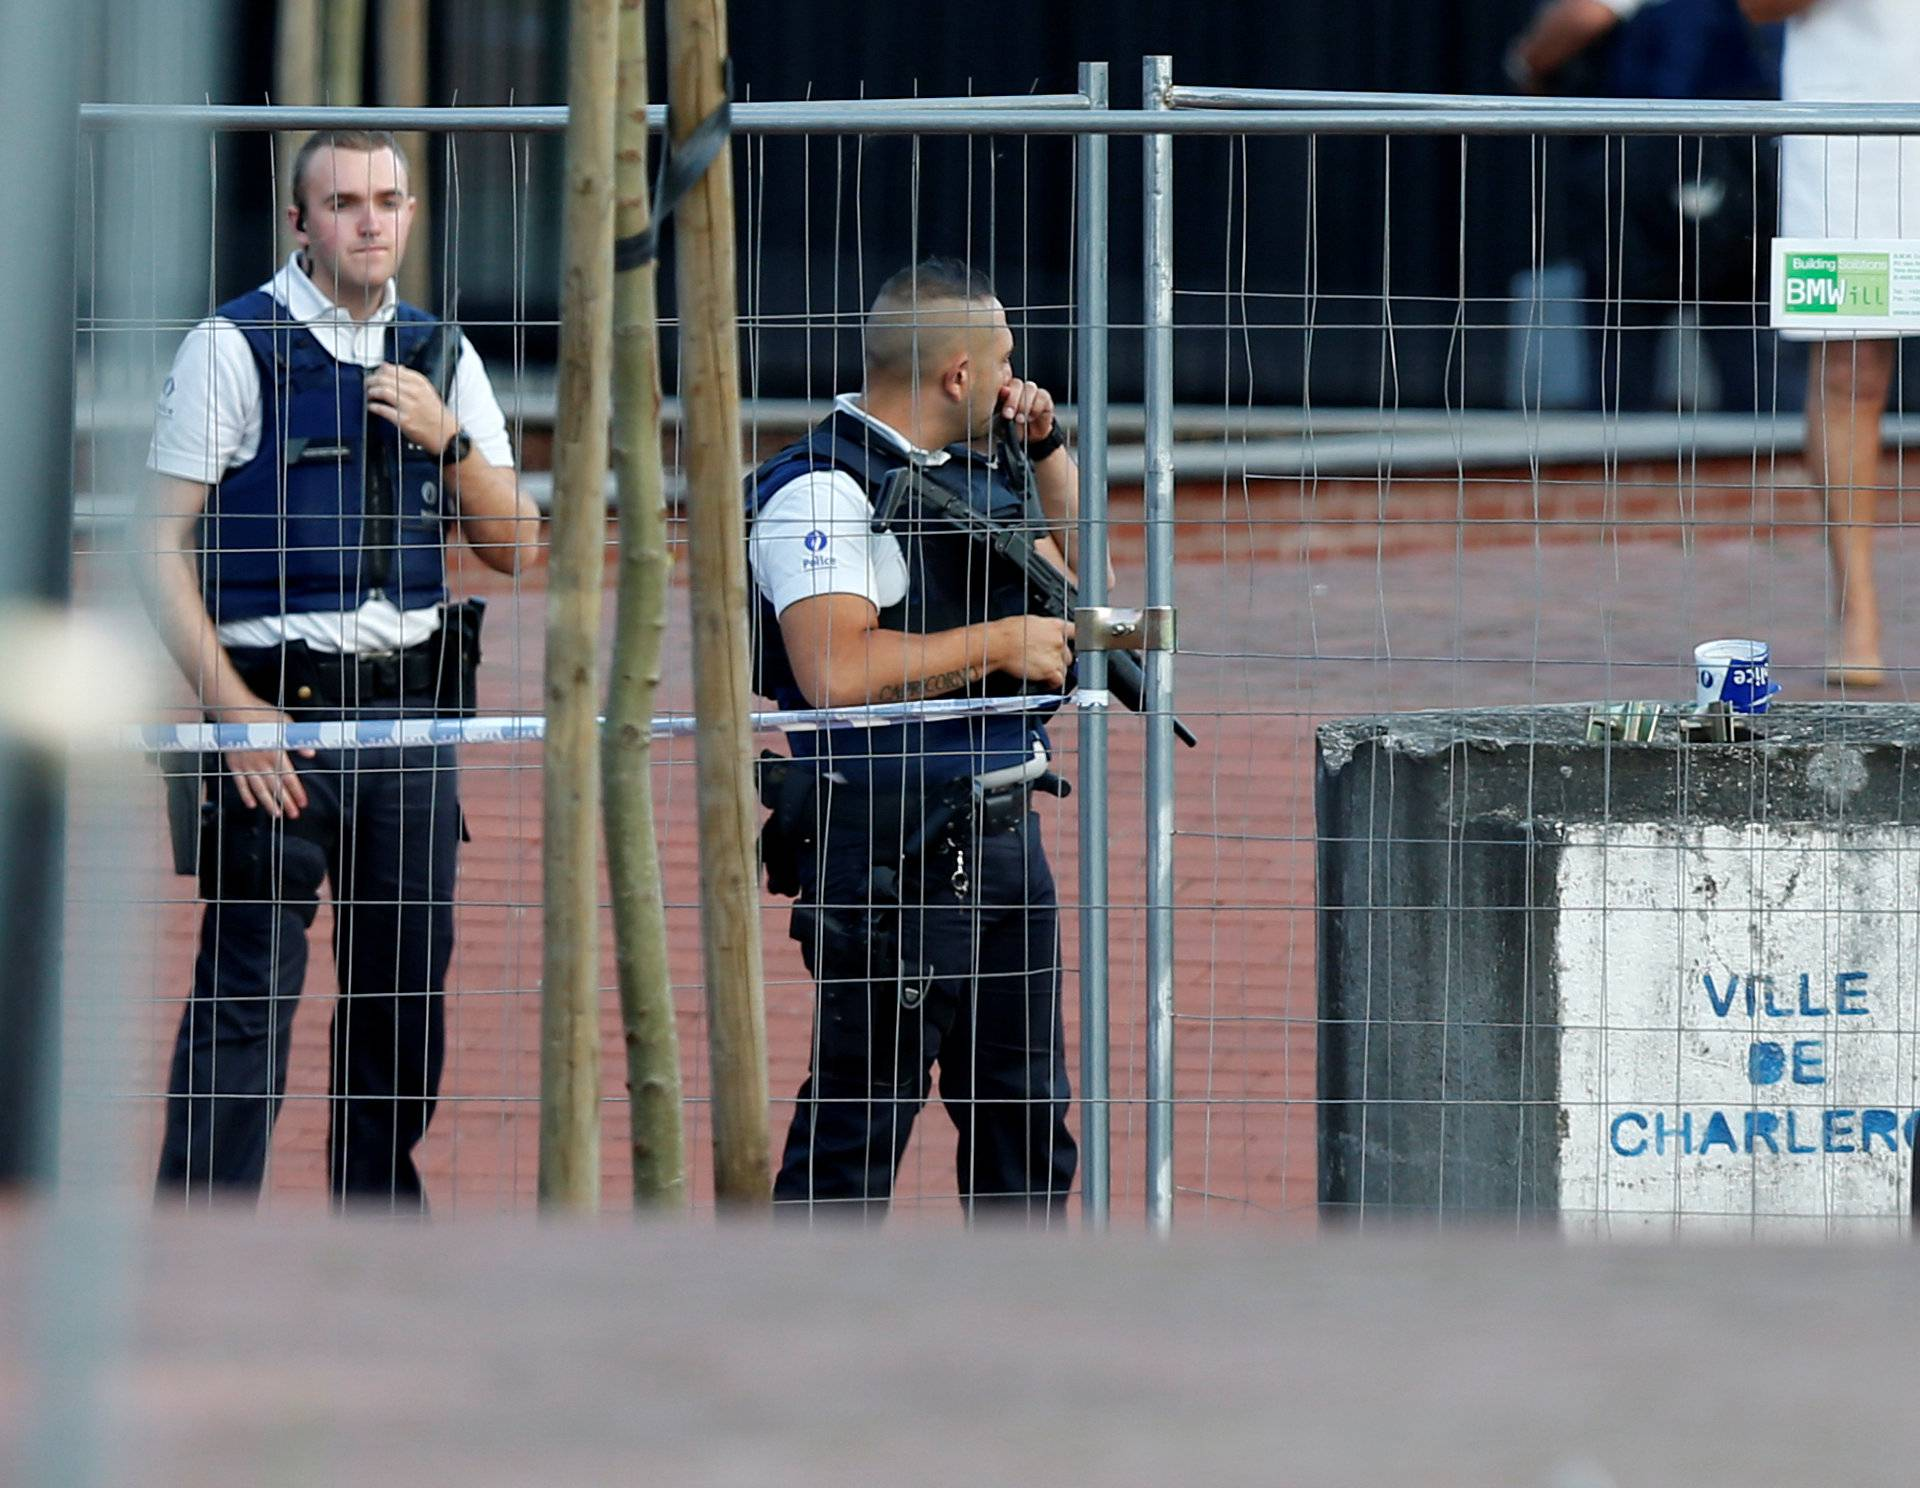 Belgian police officers stand guard outside the main police station after a machete-wielding man injured two female police officers before being shot in Charleroi